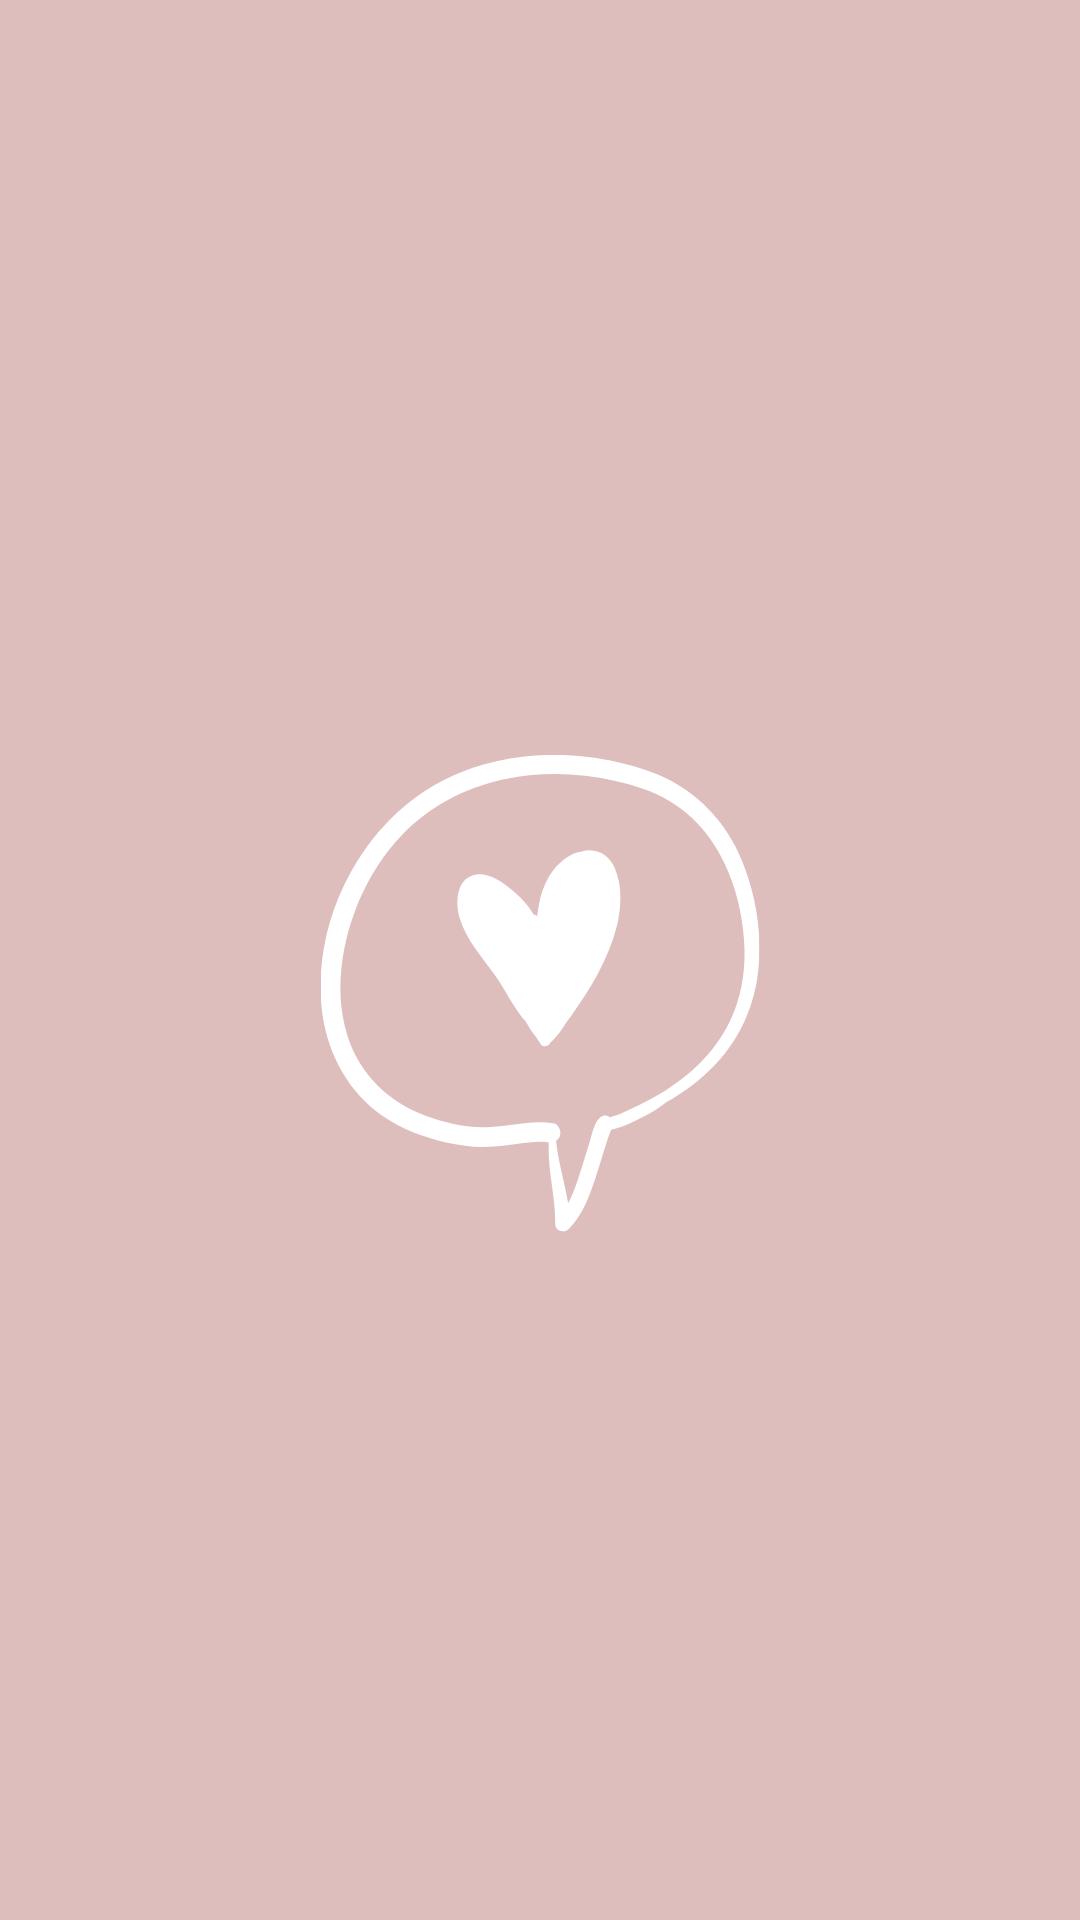 Heart Message Instagram Highlight Cover Pink Instagram Instagram White Cute App